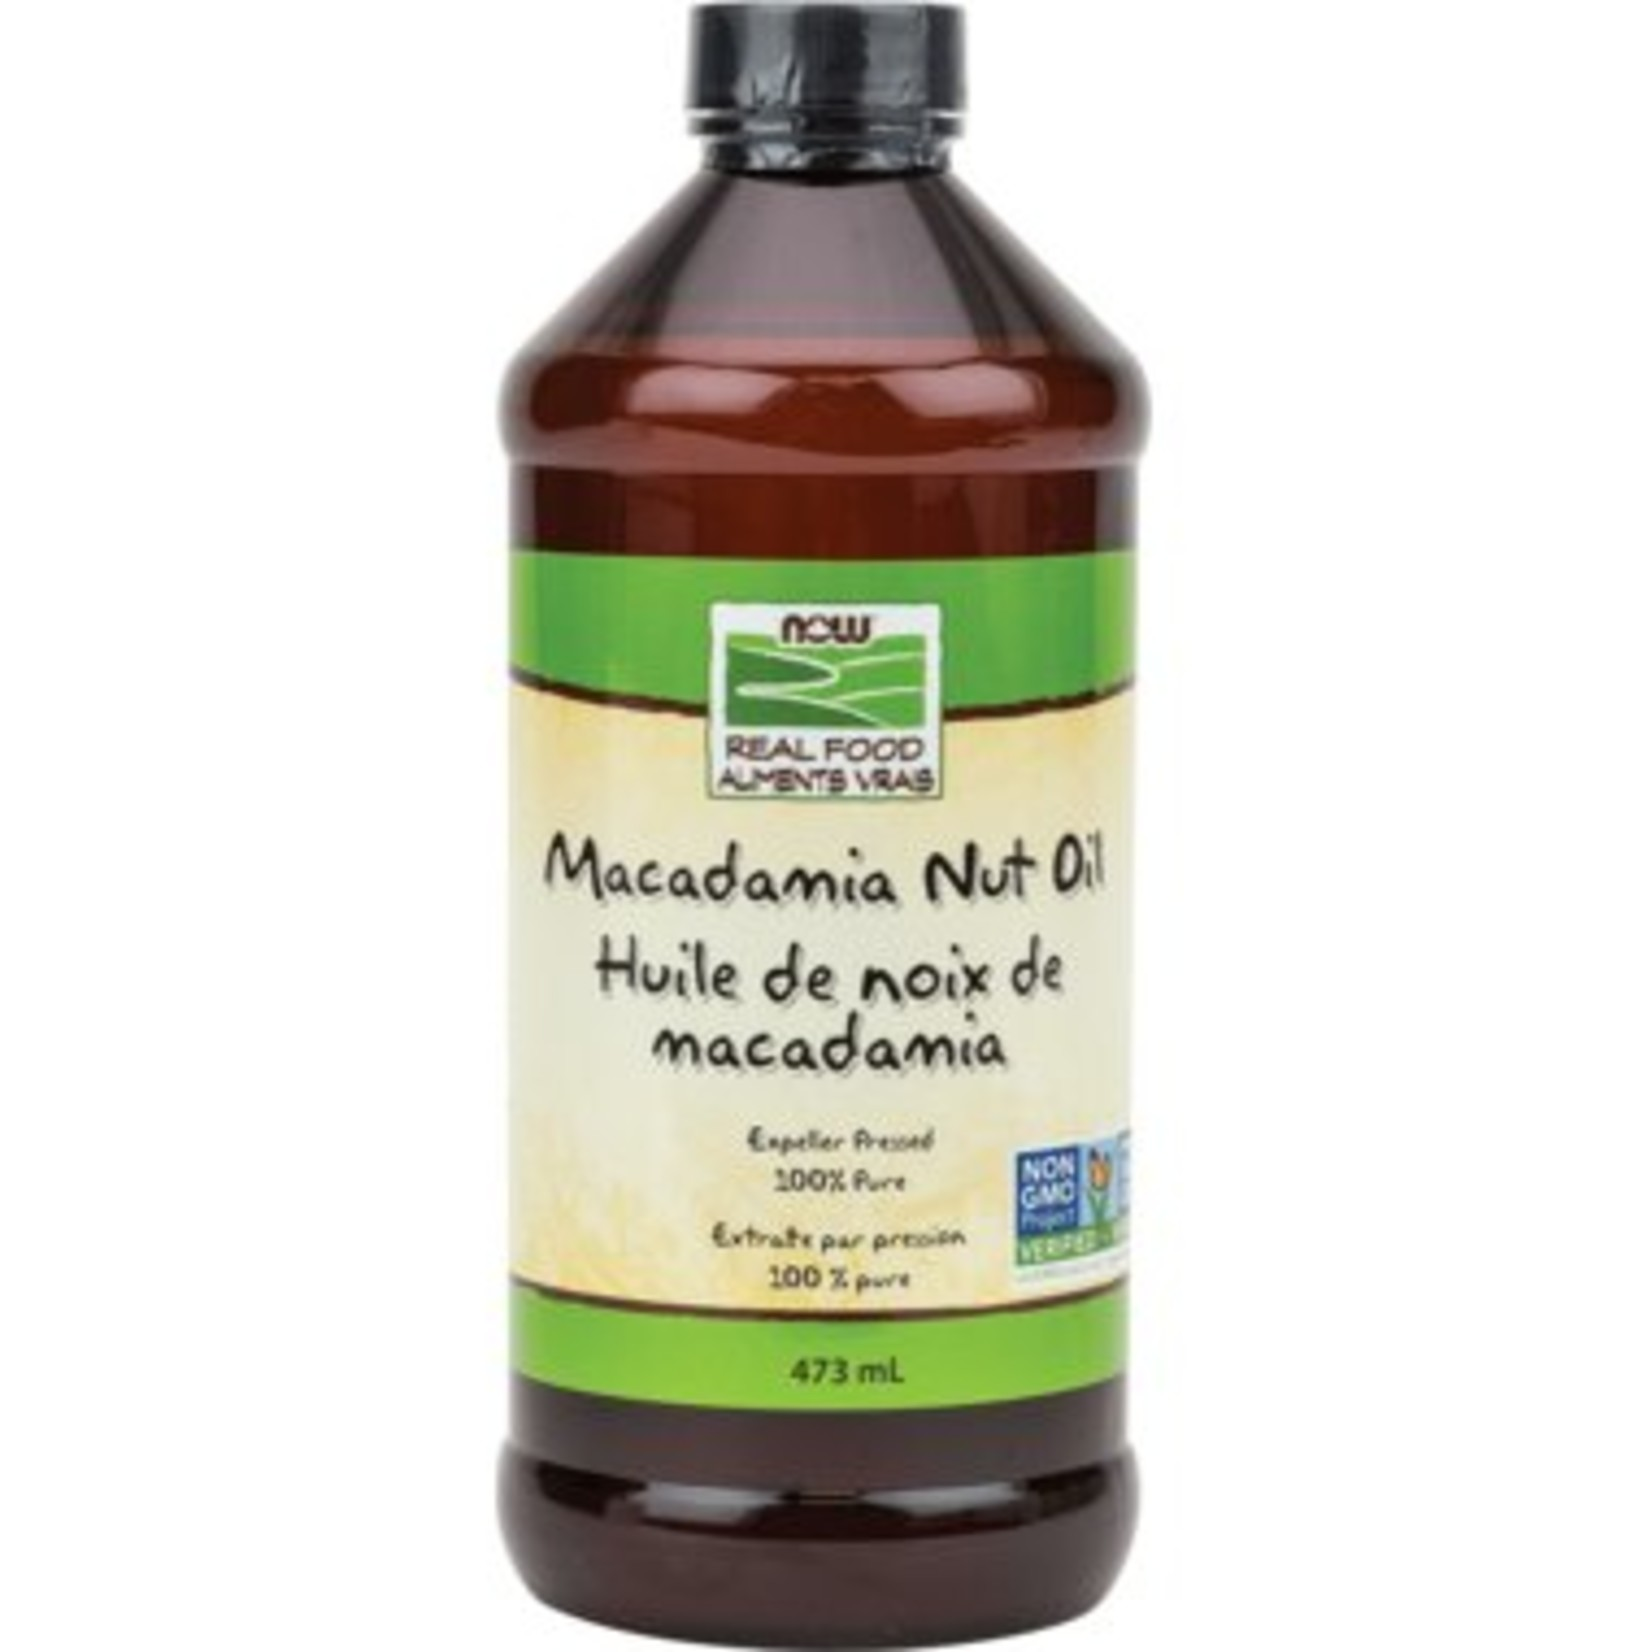 NOW NOW Macademia Nut Oil 100% Pure Expeller Pressed 473ml